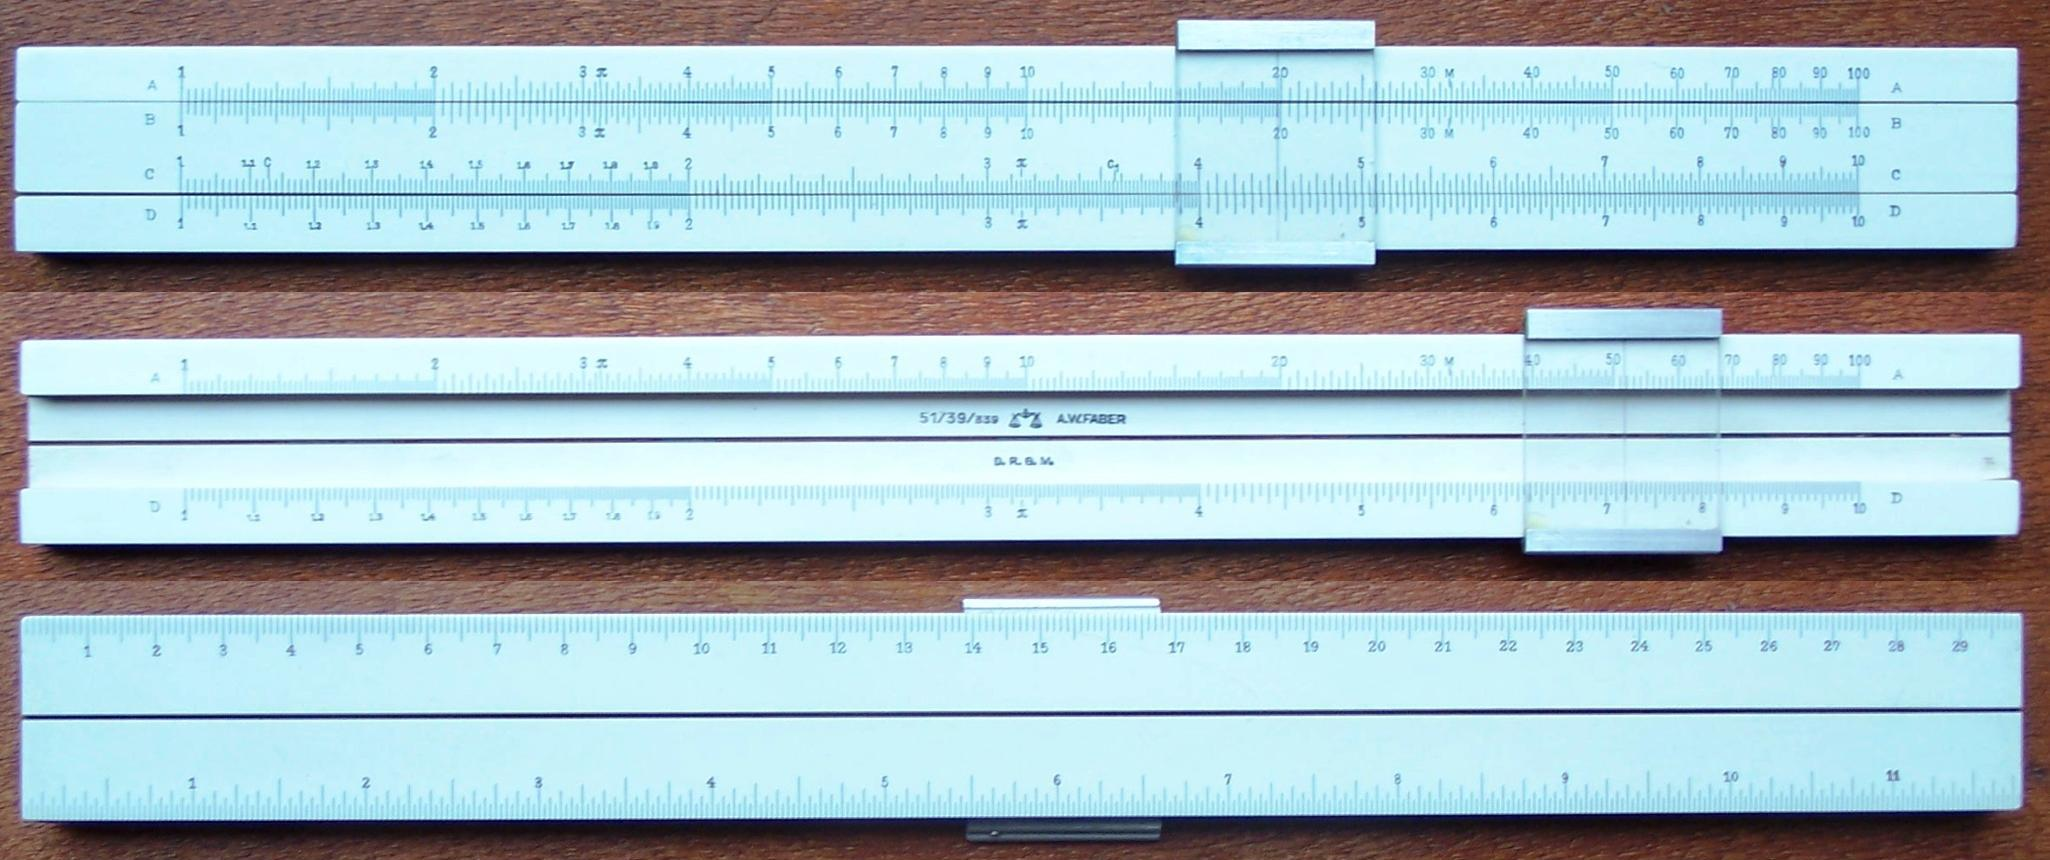 dating faber castell slide rules I take a look at a couple circular slide rules and discuss some pros and cons there are a few errors: - the gilson binary slide rules are thus named for having a scale of binary fractions.